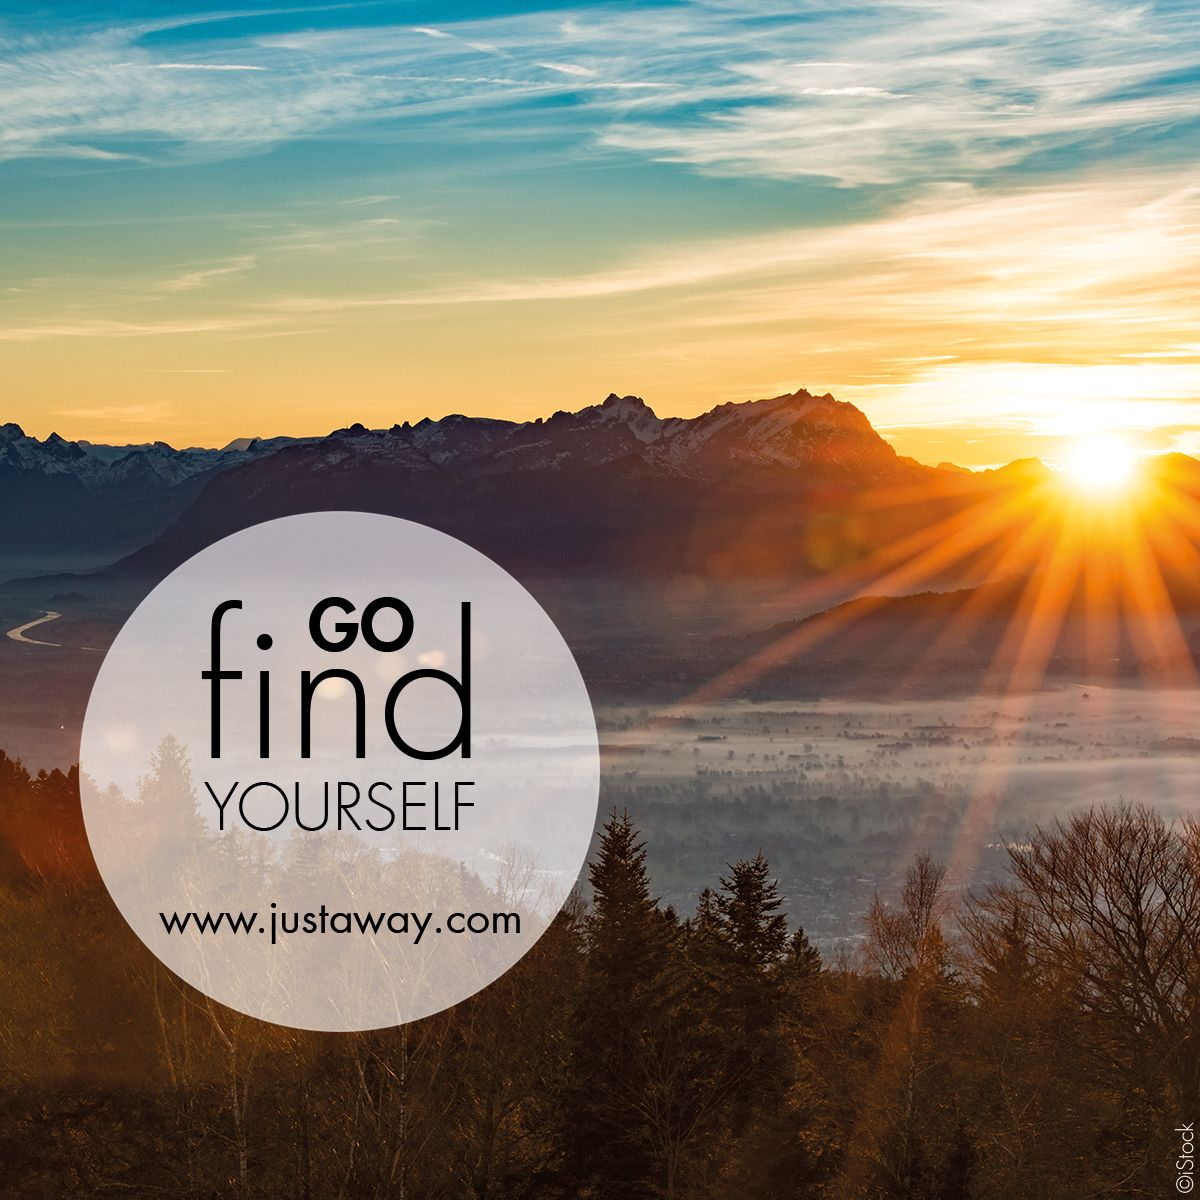 #justaway #travel #quote #sun #mountains #hiking